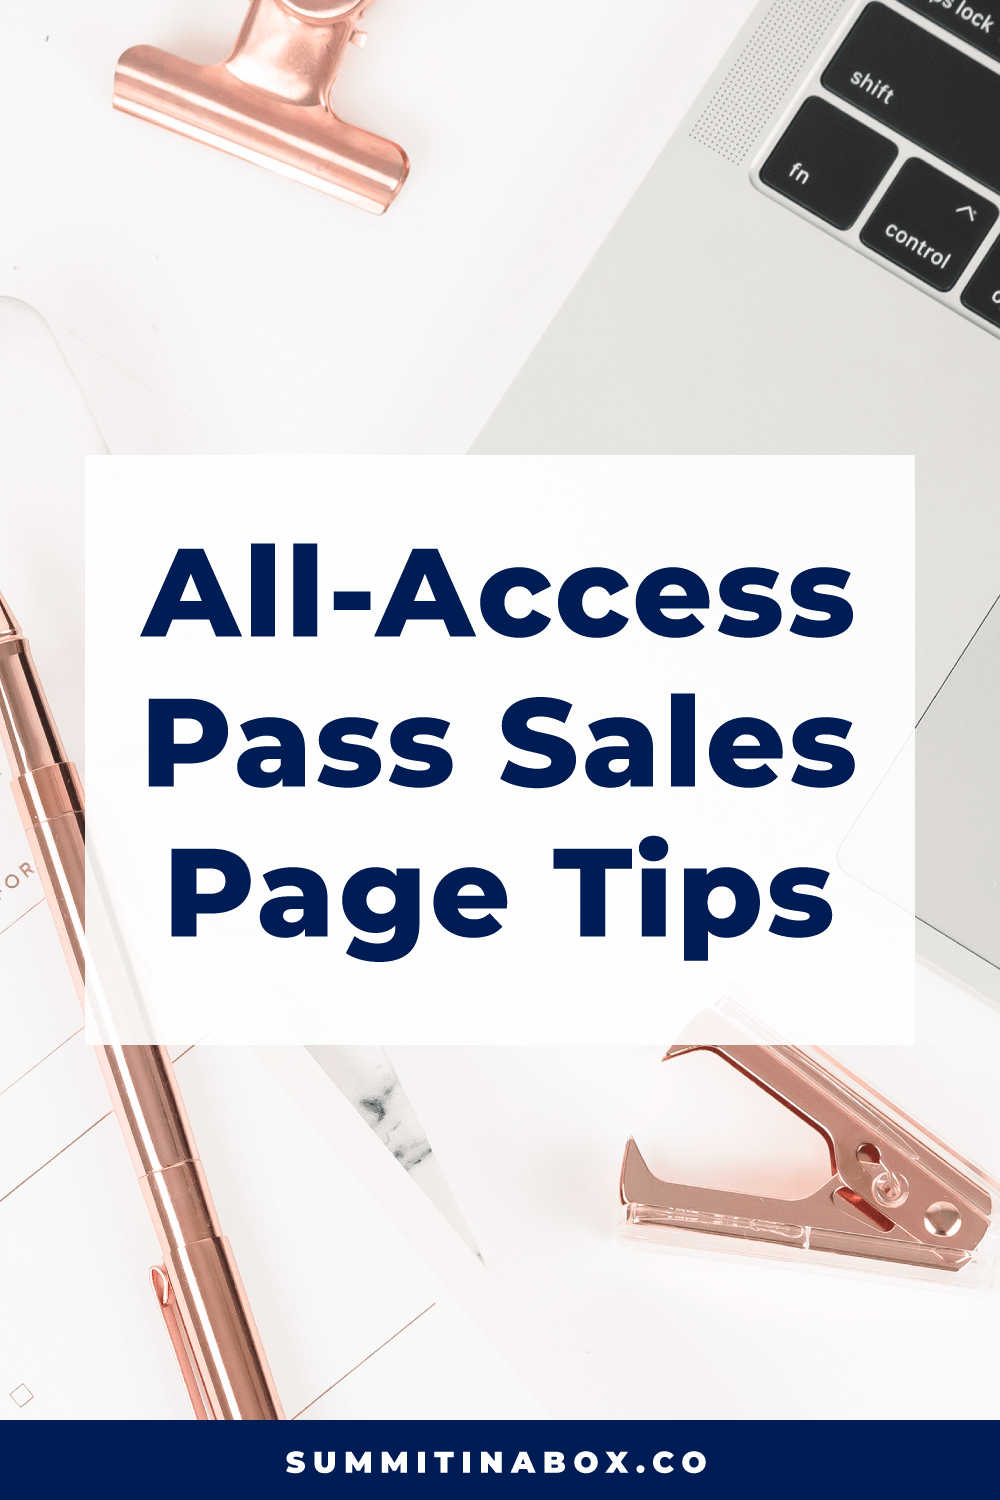 You've got an incredible all-access pass offer and now it's time to see sales rolling in. Here are 5 all-access pass sales page tips you can't afford to miss.